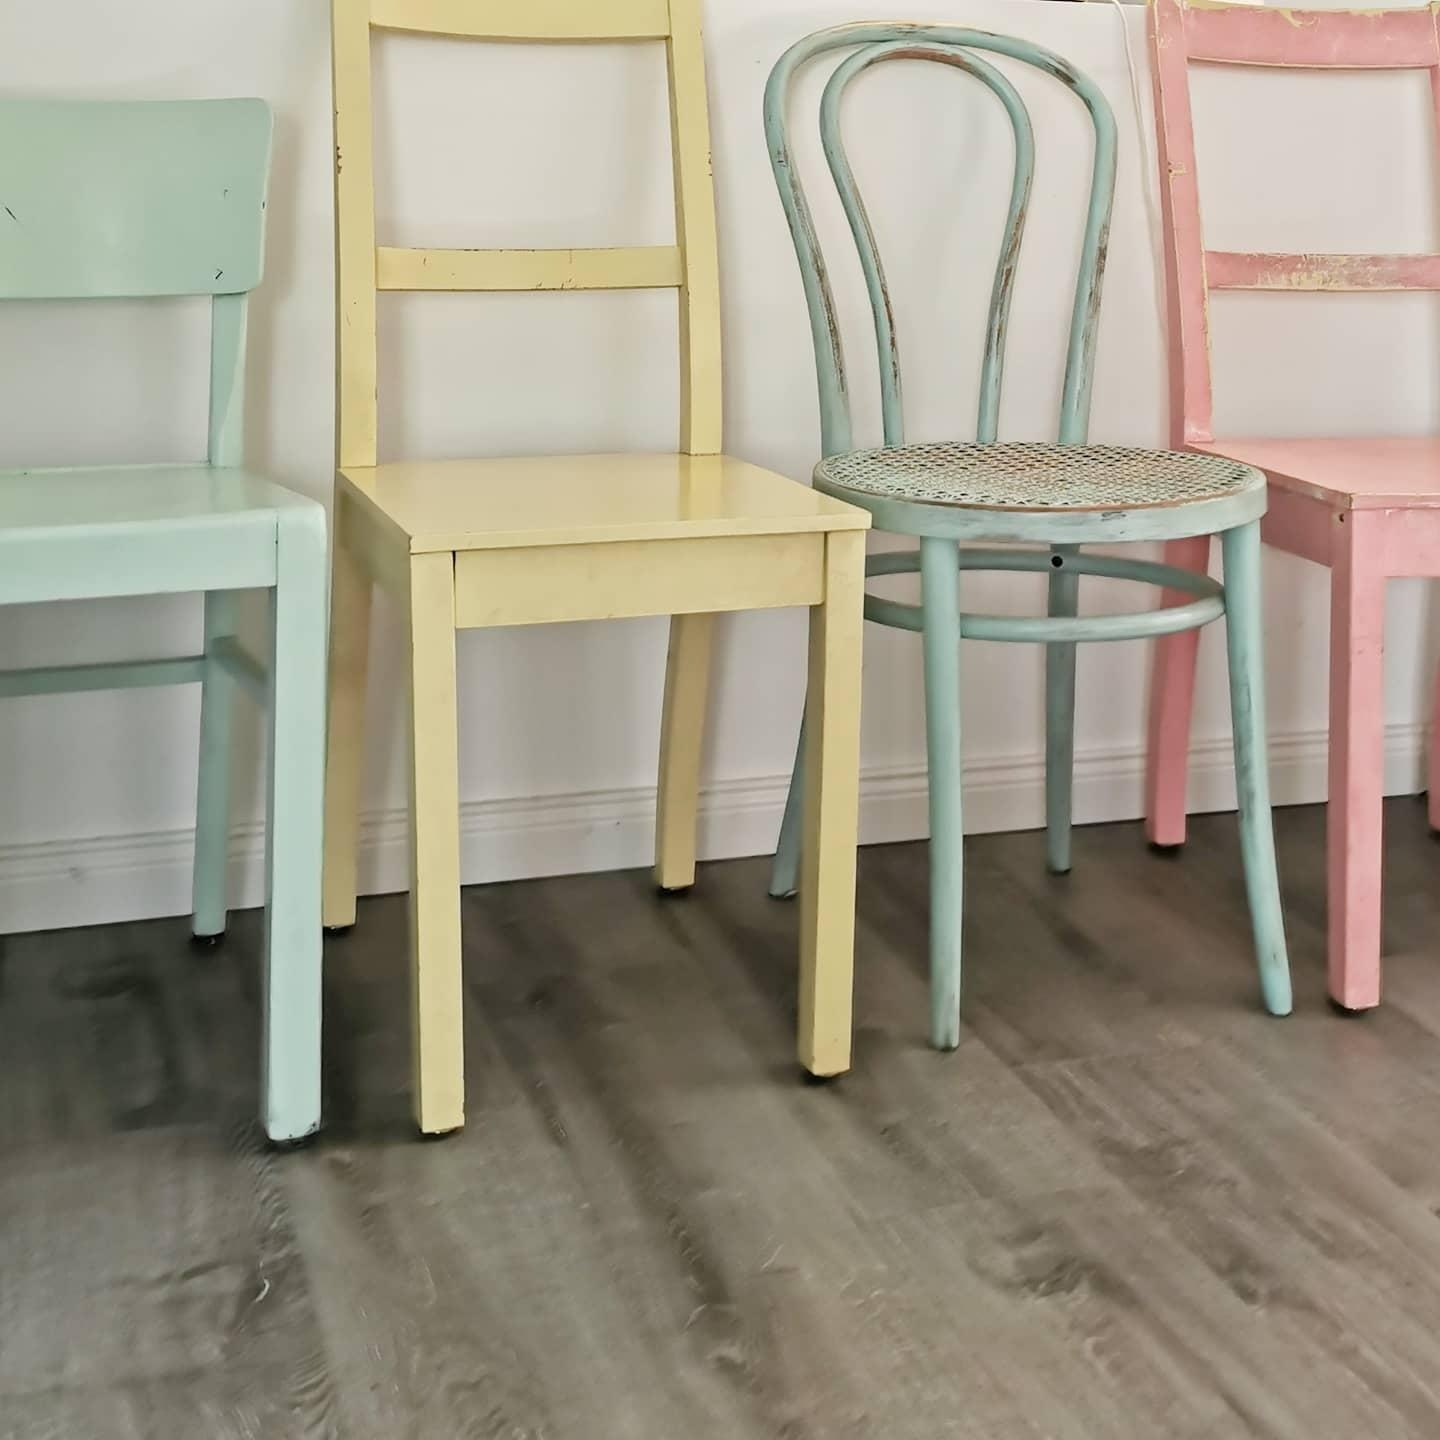 It's all about the mix! Unsere pastellige Stuhlparade #stilmix #stühle #pastell #chairs #colourfulinteriors